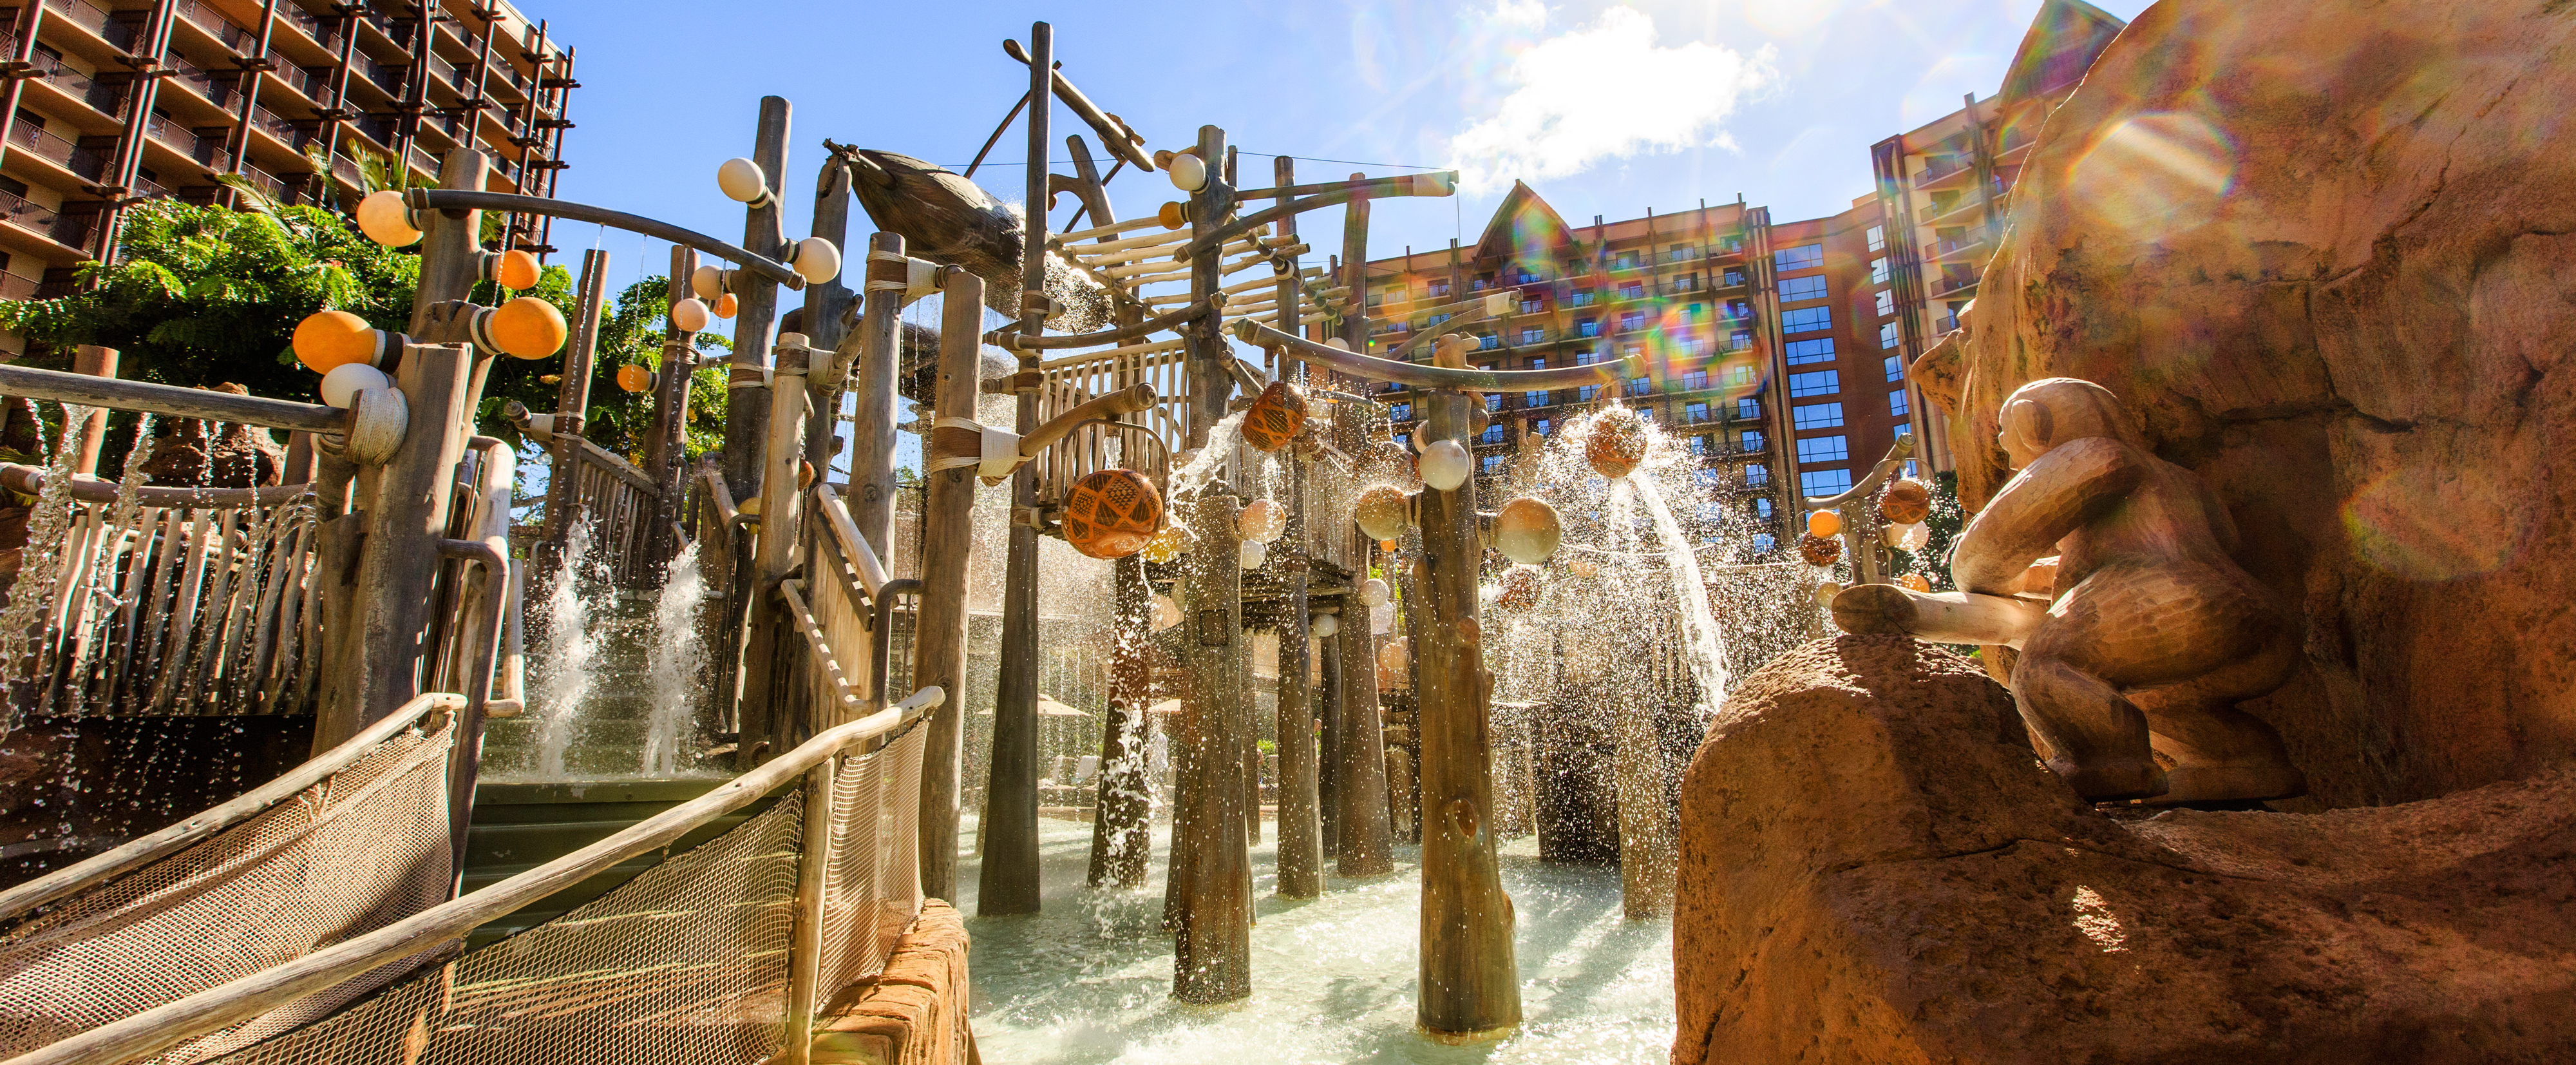 Water Spills Down From The Menehune Bridge As Resort S Rooms And Suites Tower In